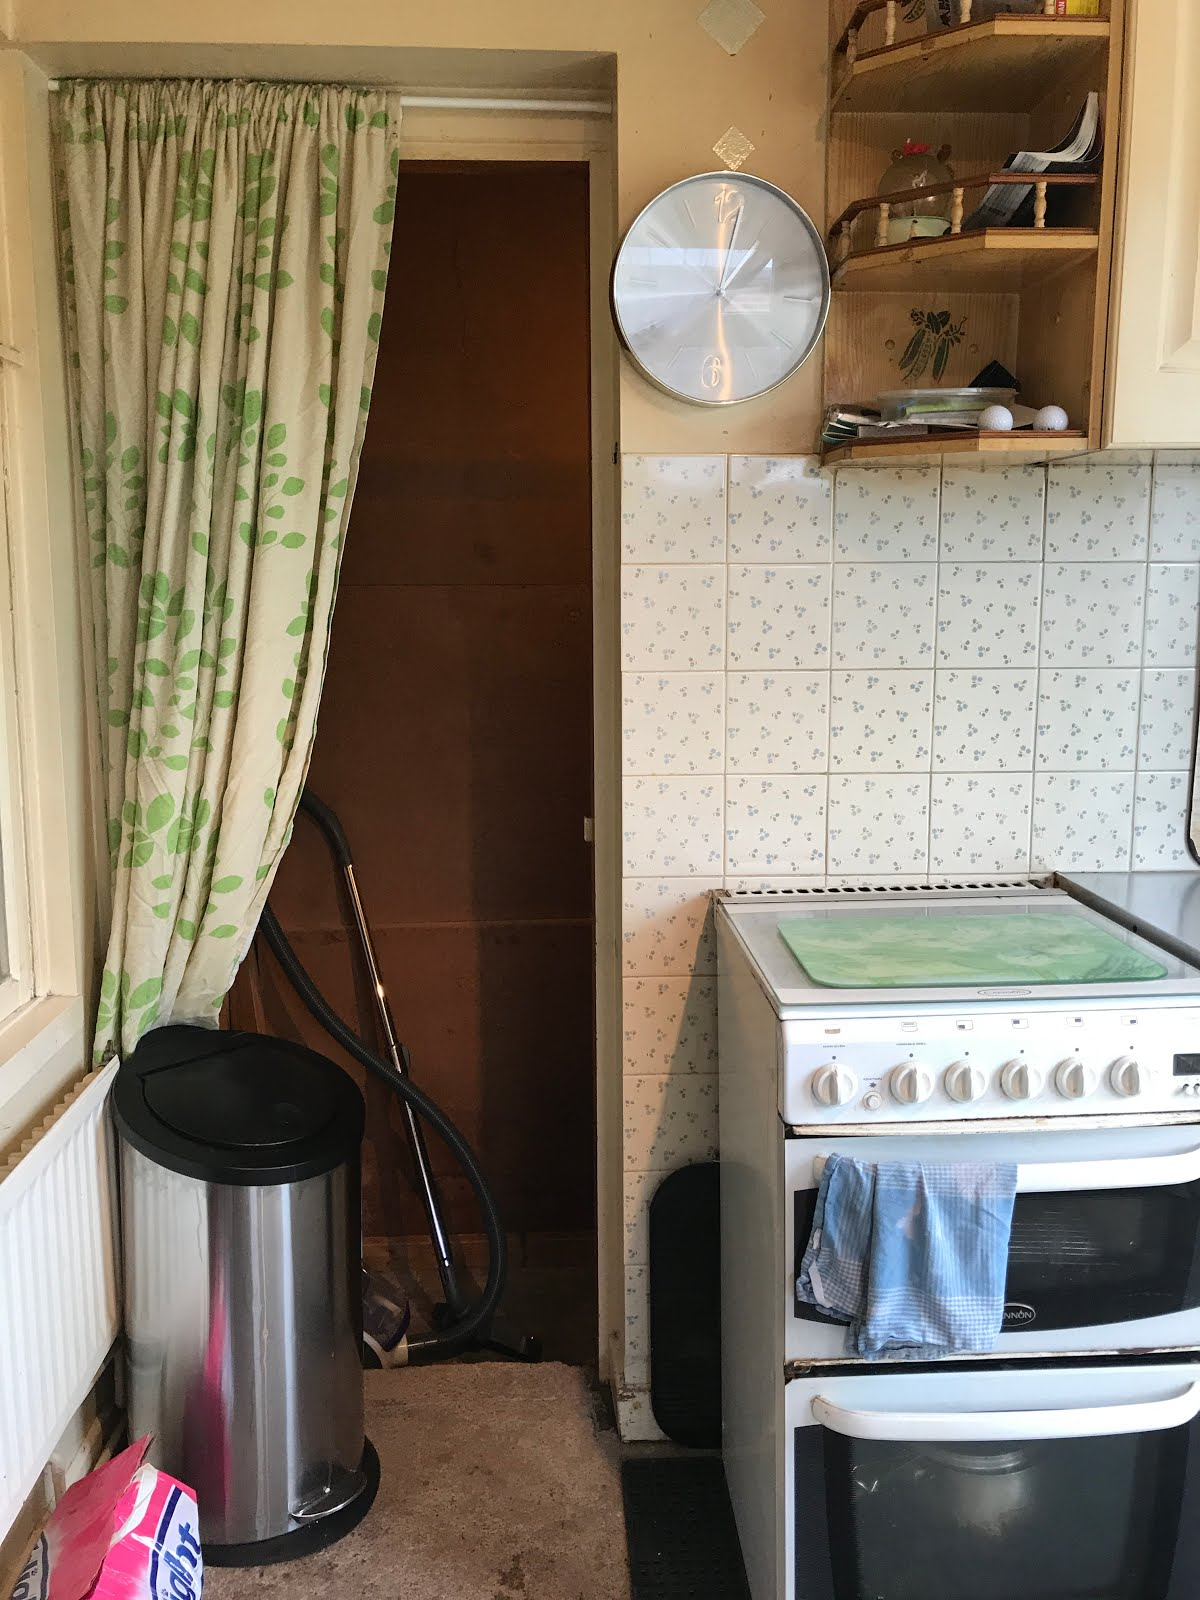 boiler 房间 behind kitchen